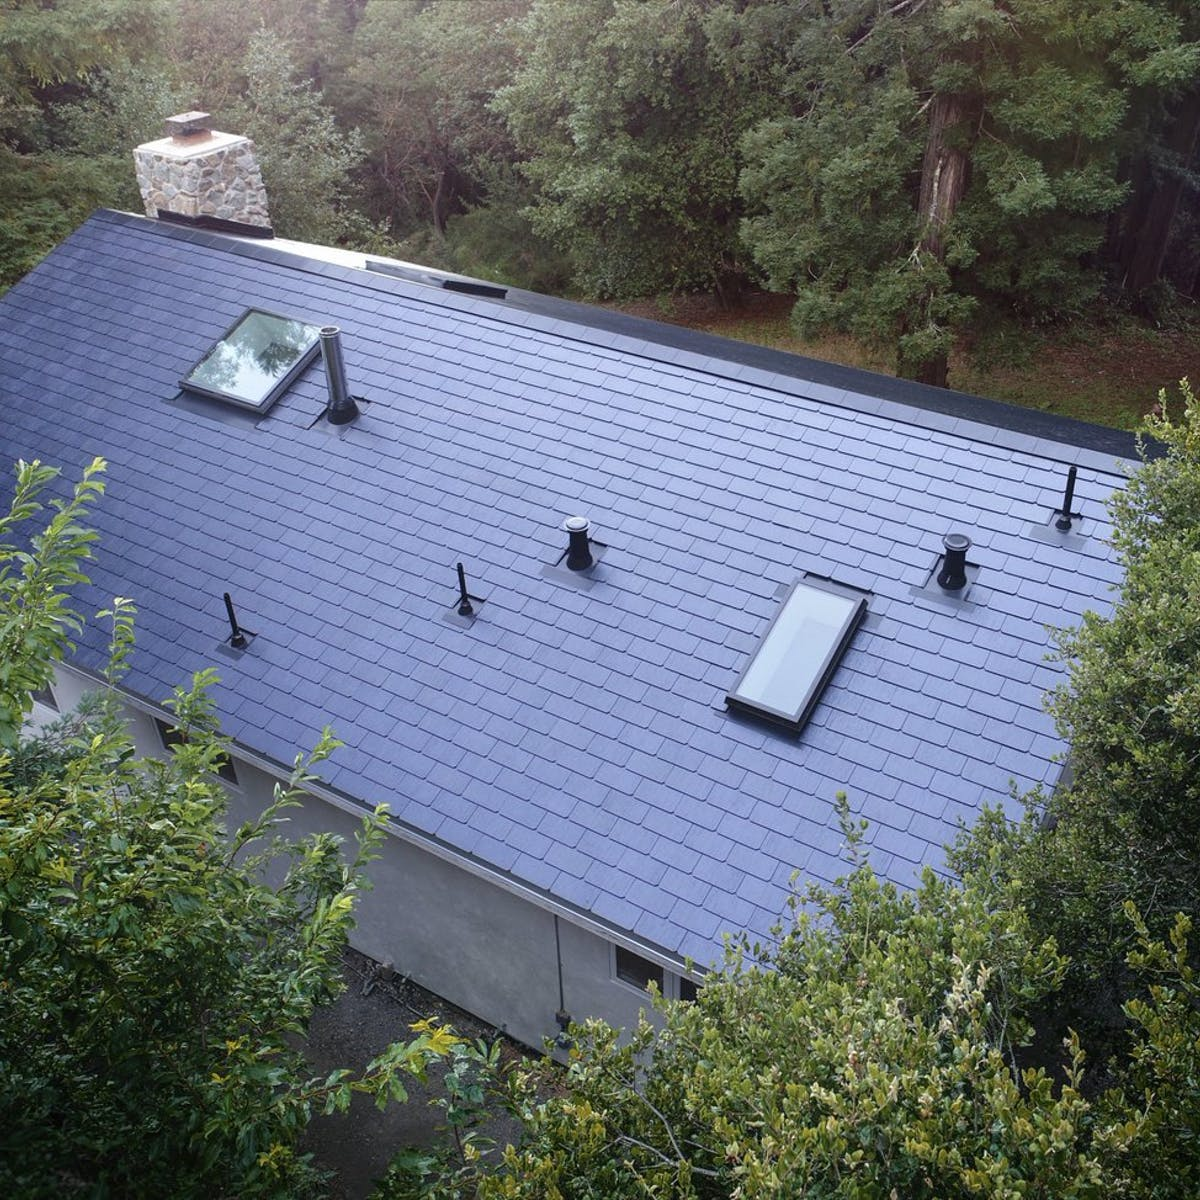 Tesla solar: Elon Musk shares how home panels may offer unexpected benefits